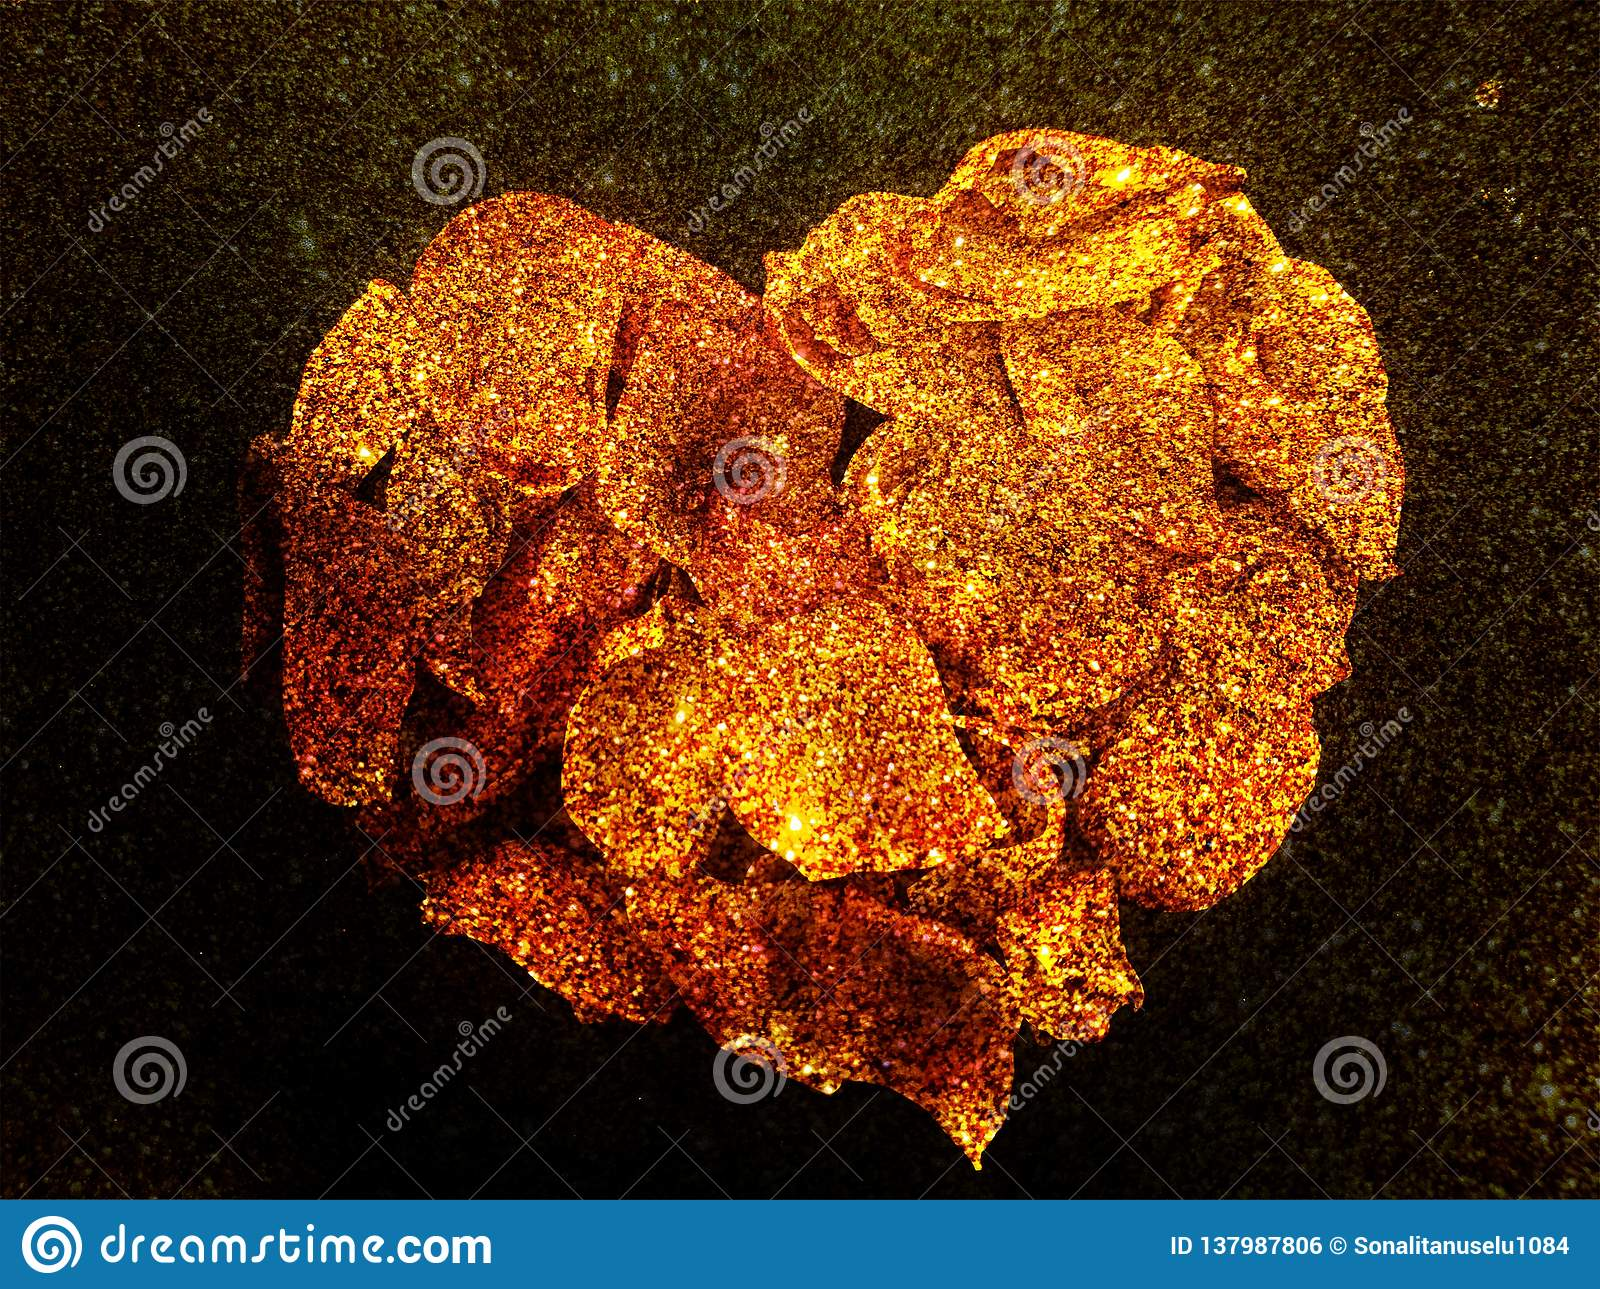 Abstract valentine heart of Rose Rose petals with textured background